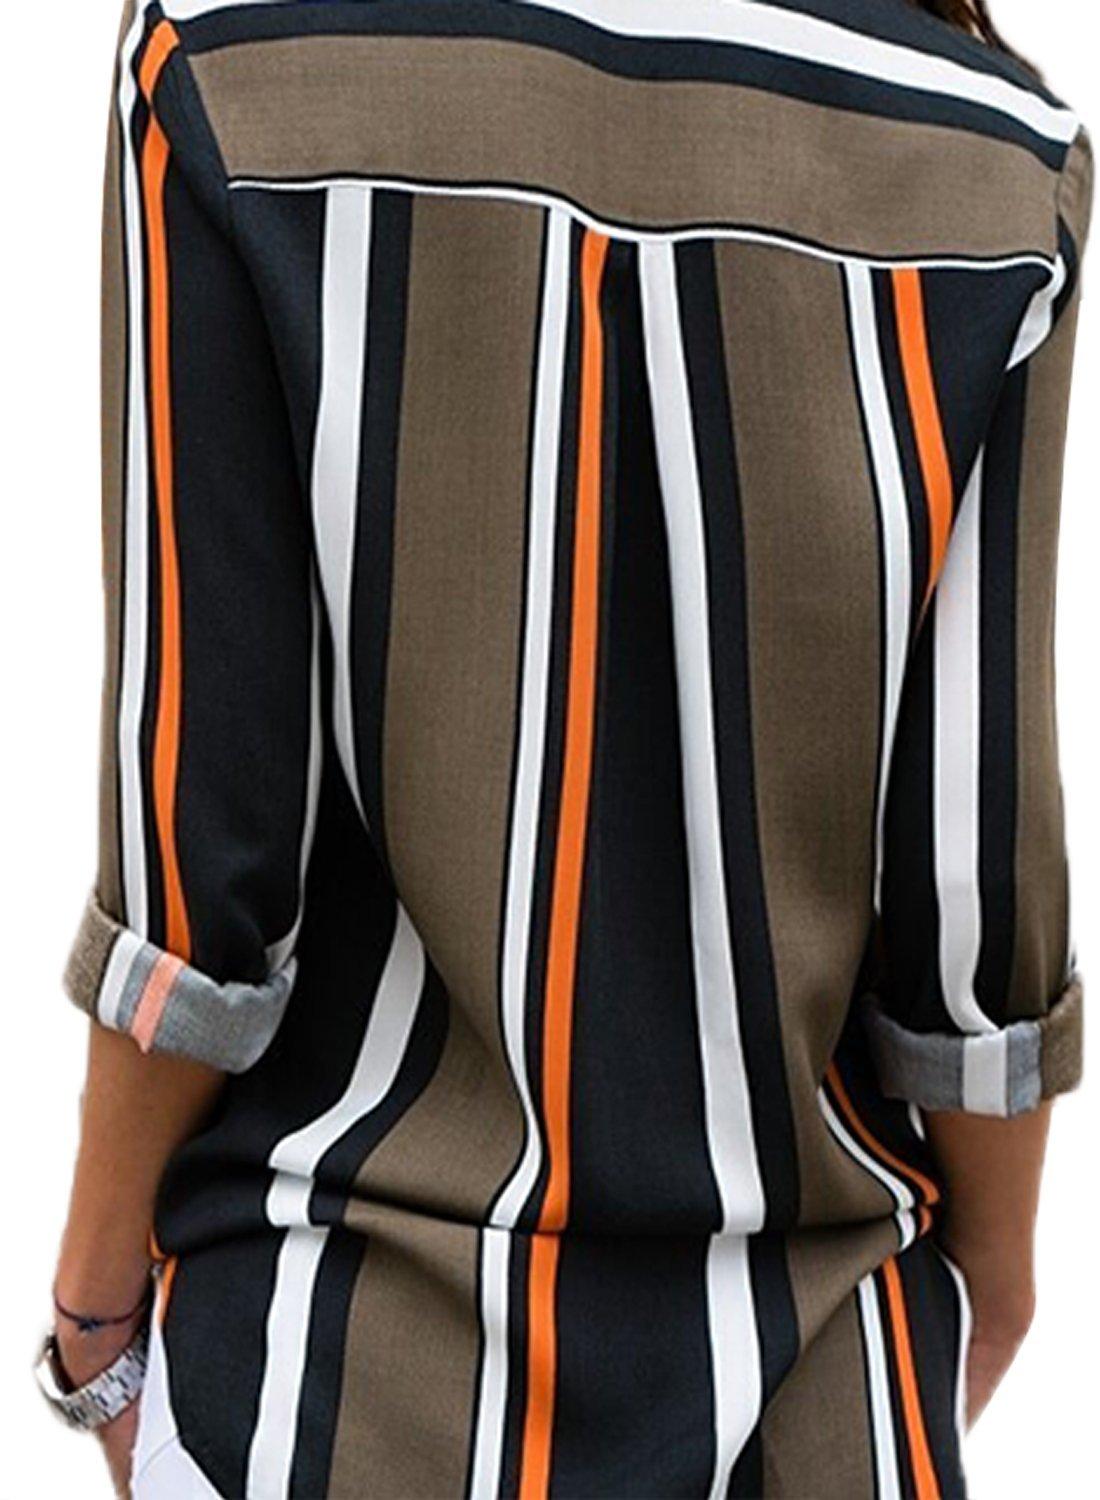 Womens Long Sleeve Summer Spring V Neck Button up Color Block Stripes Blouse Casual Tops and T Shirts for Jeans Under 20 XX-Large 18 20 Black by Astylish (Image #2)